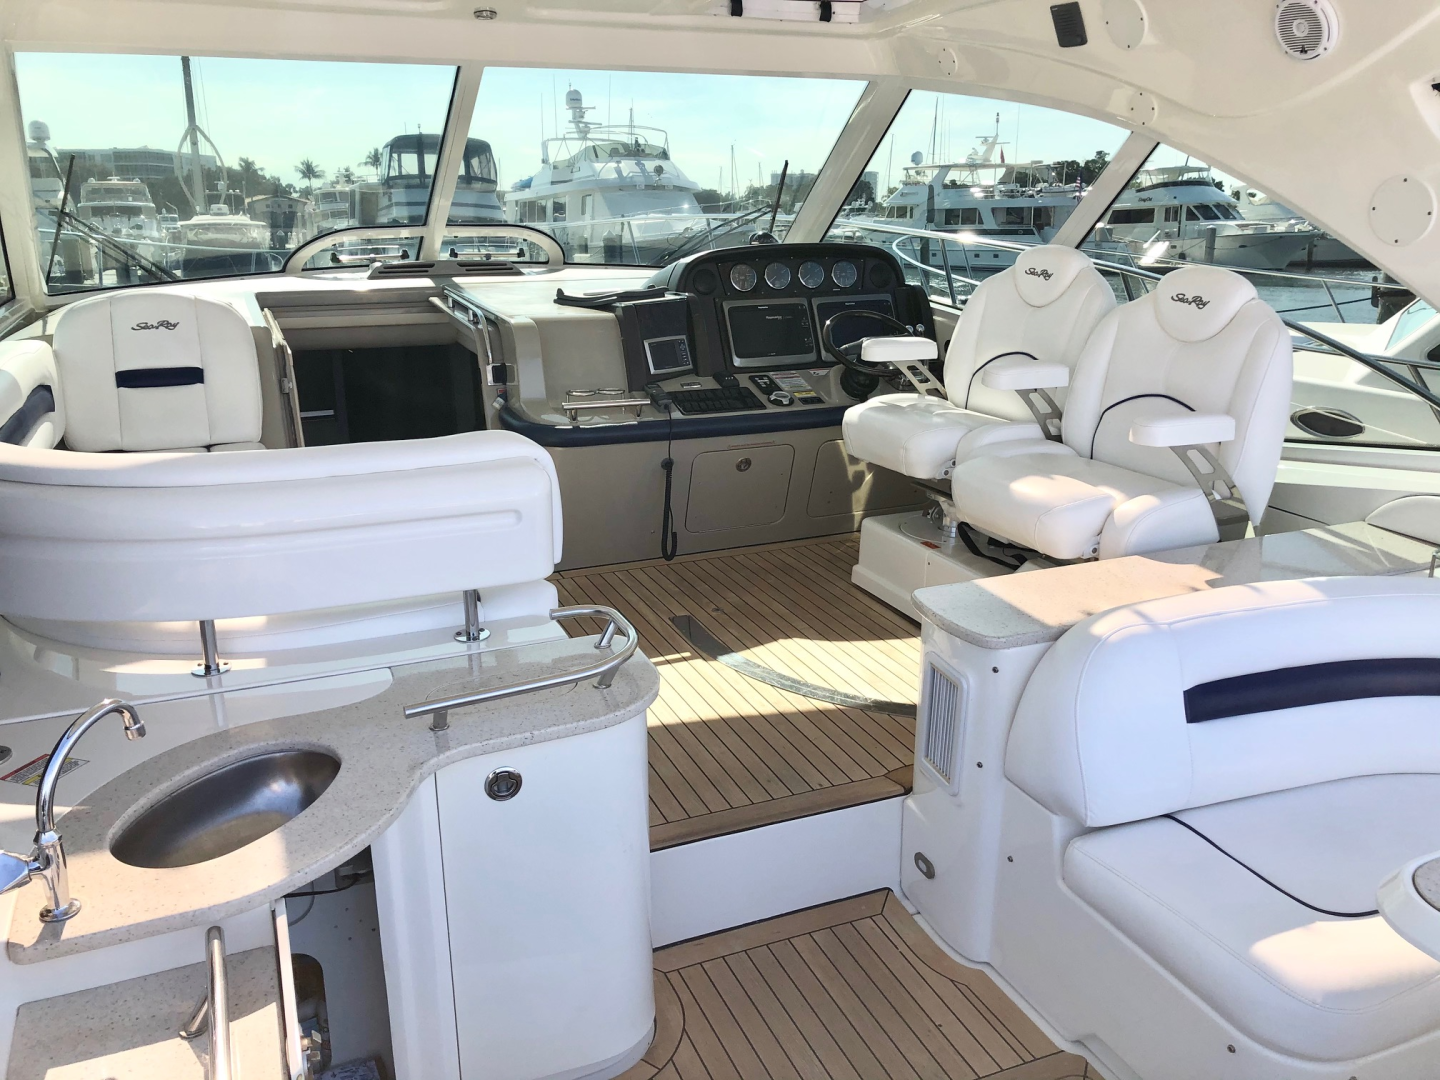 Sea Ray-48 Sundancer 2009-No Name Longboat Key-Florida-United States-2009 Sea Ray 470 Sundancer-1594858 | Thumbnail